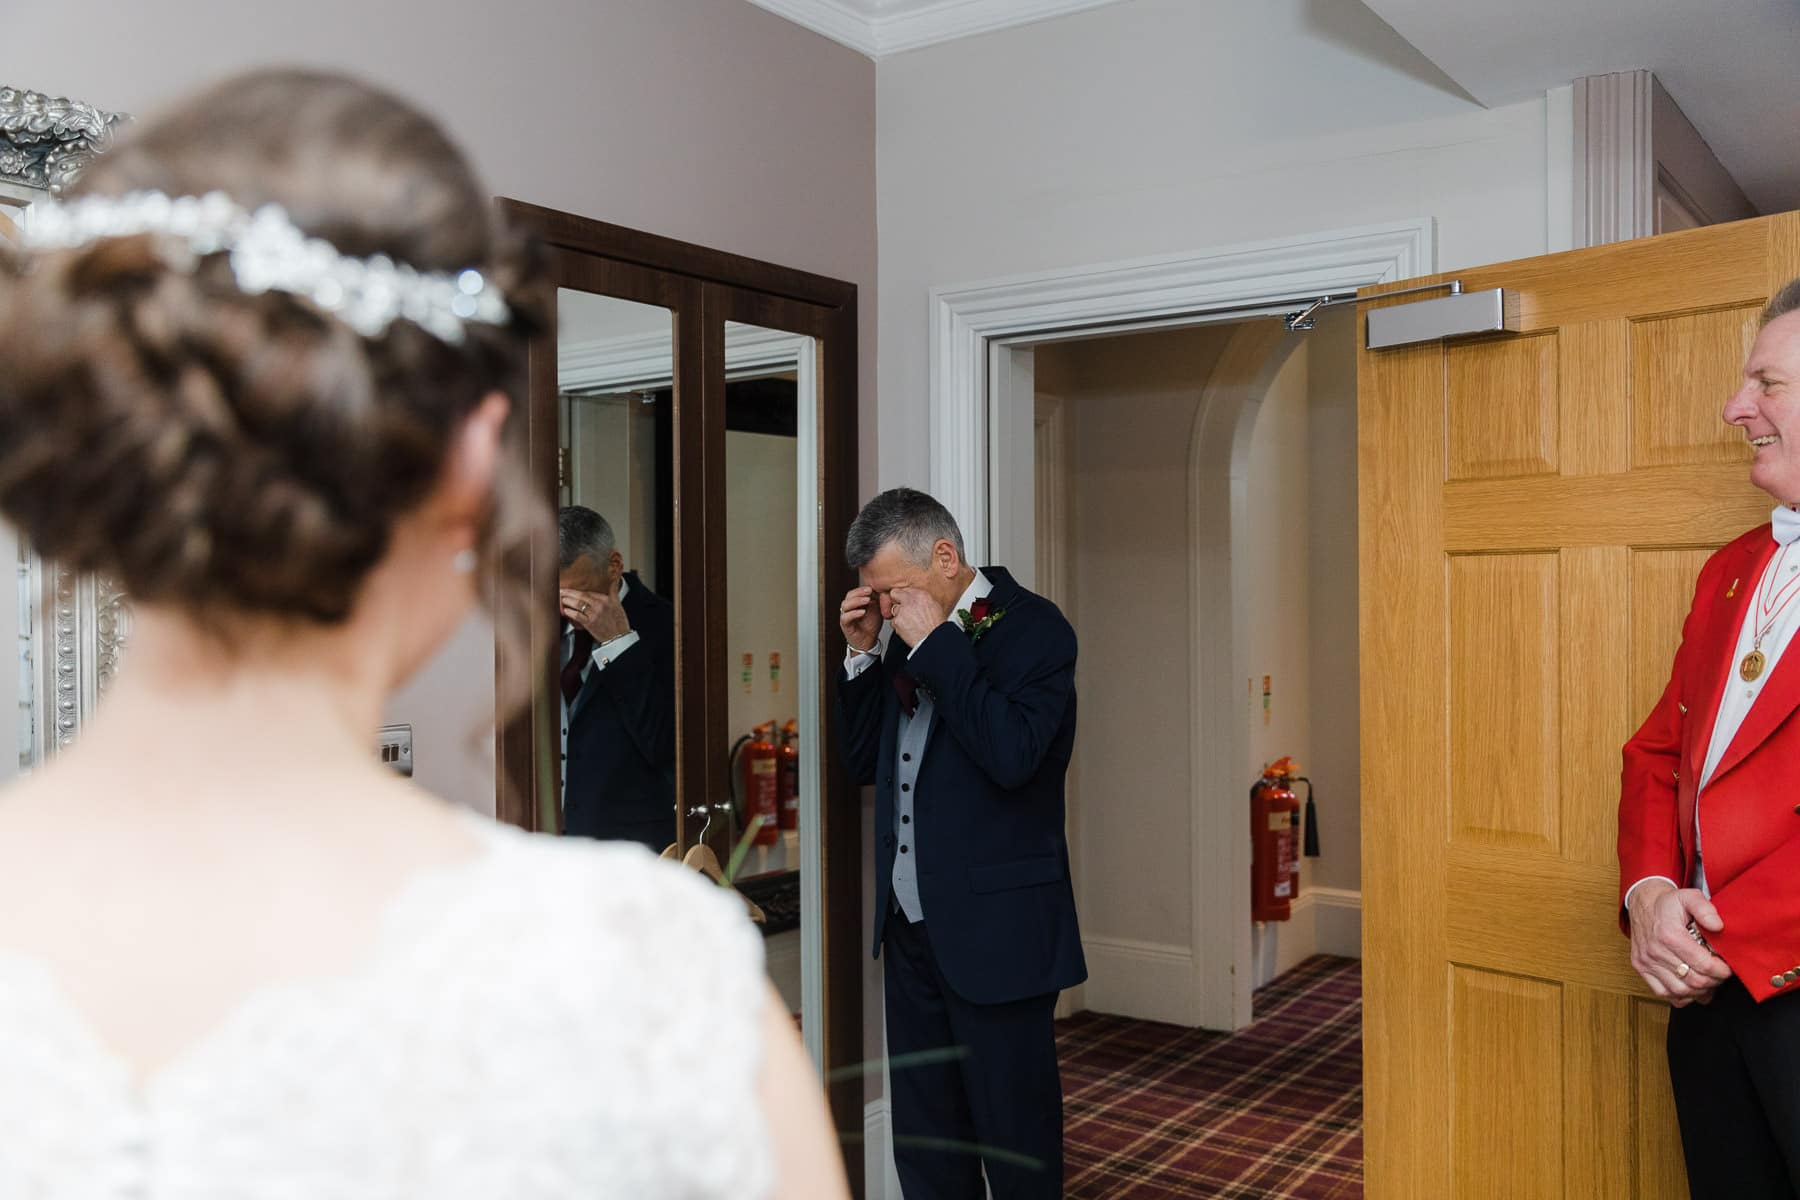 Emotional father seeing his daughter in her dress for the first time